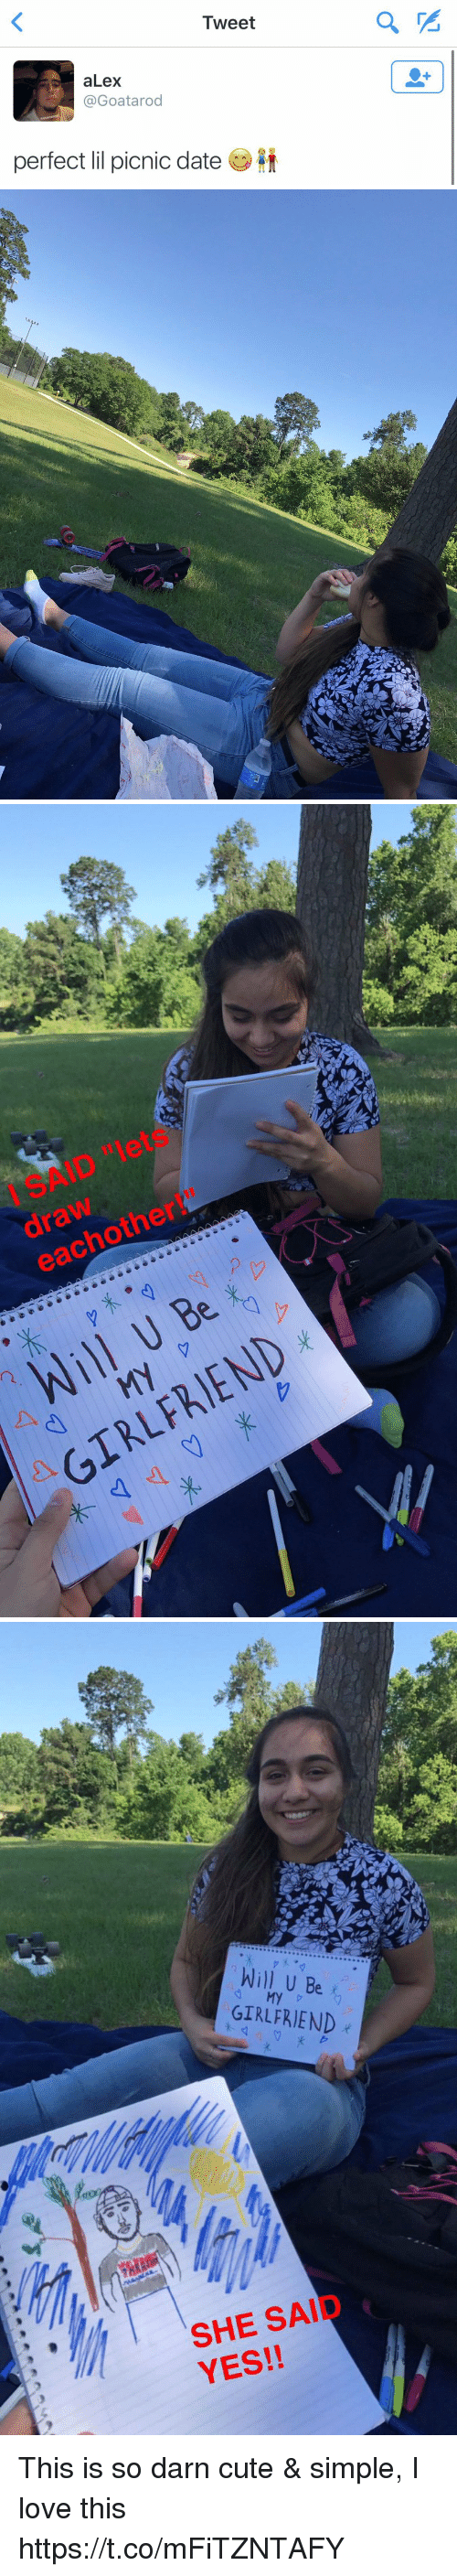 Cute, Love, and Date: Tweet  aLex  Goatarod  perfect lil picnic date  O   other  each GIRLFRIEND   Will U Be  GIRLFRIEND  SHE SAID  YES This is so darn cute & simple, I love this https://t.co/mFiTZNTAFY